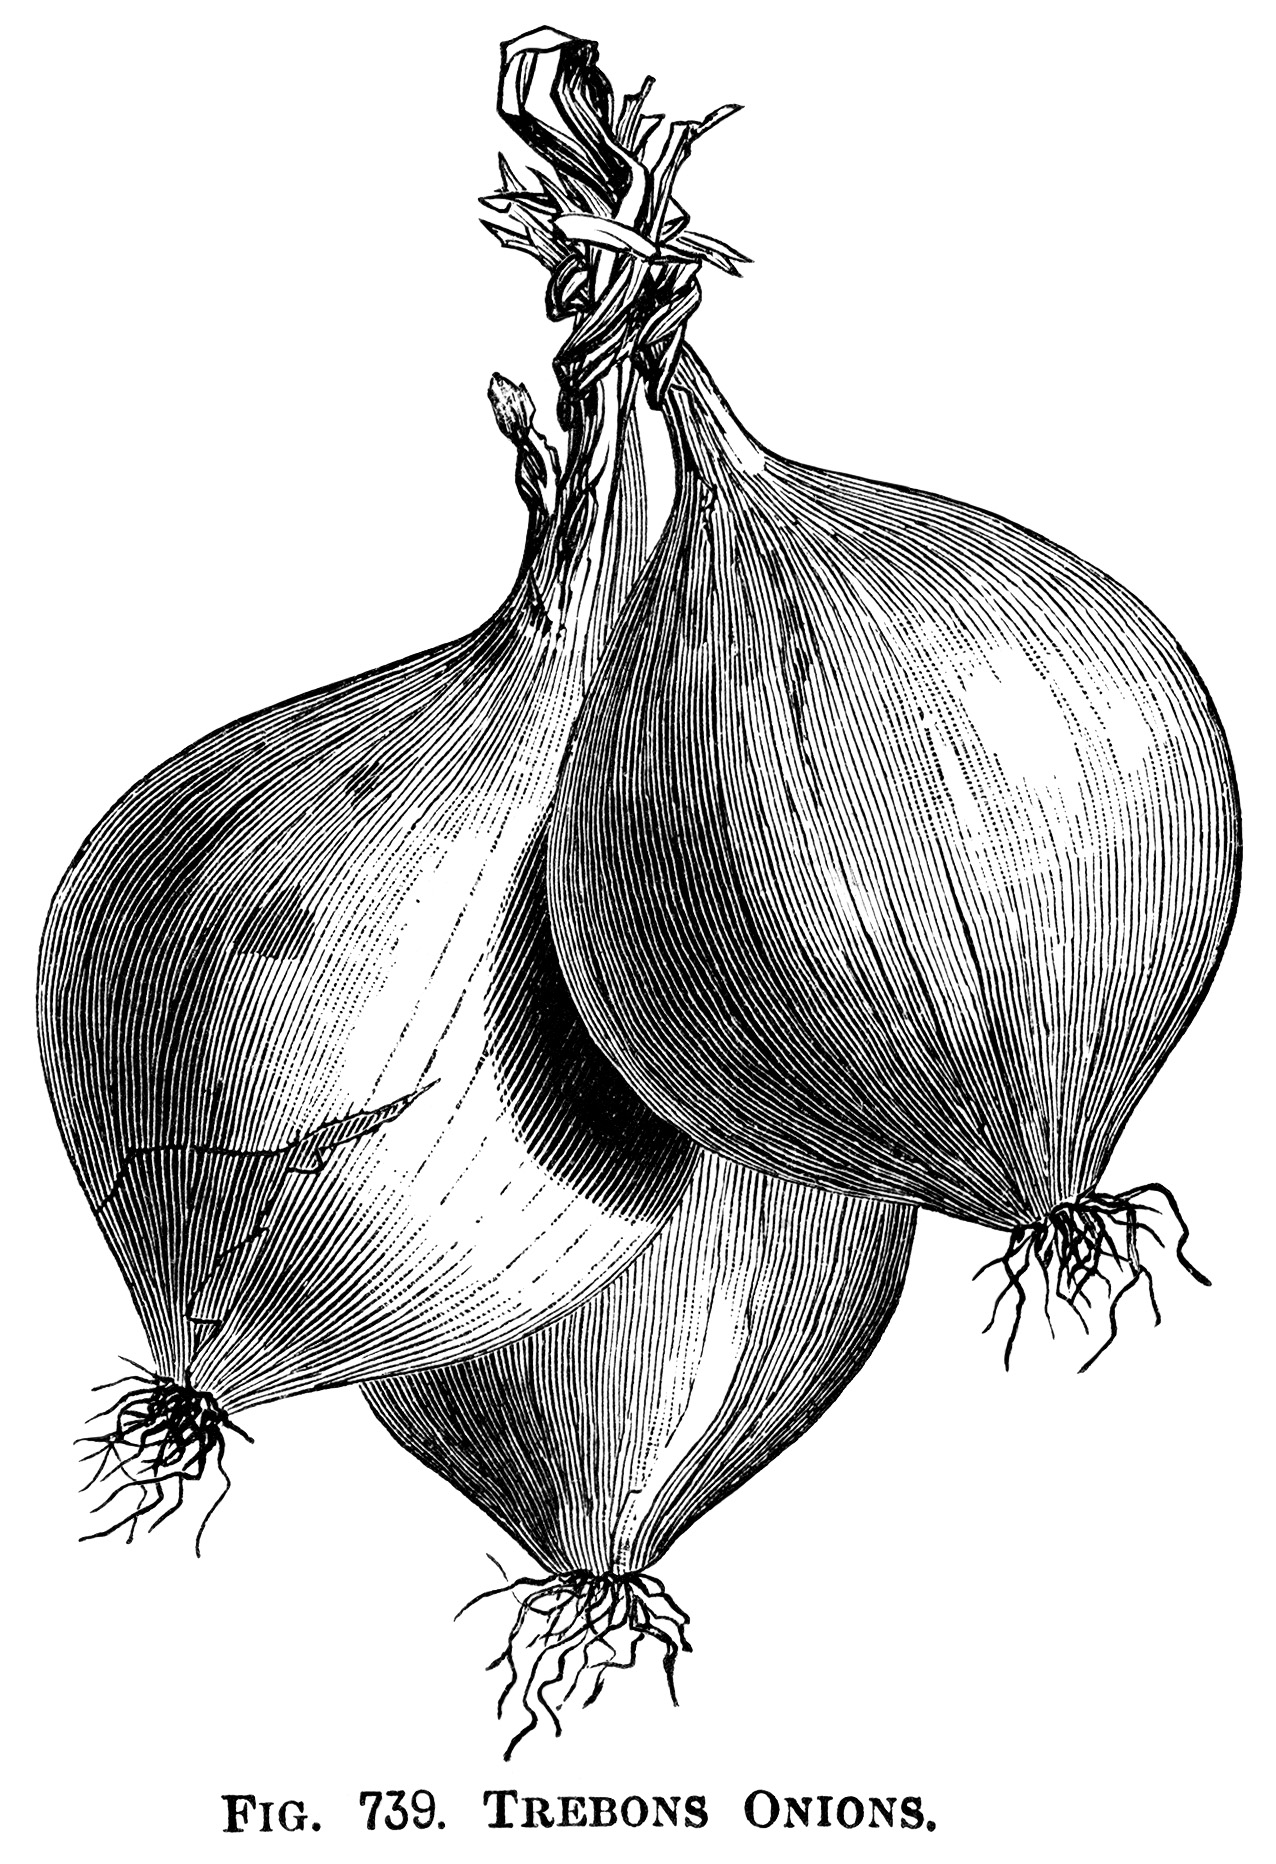 Free Onion Clipart Black And White, Download Free Clip Art, Free Clip Art  on Clipart Library